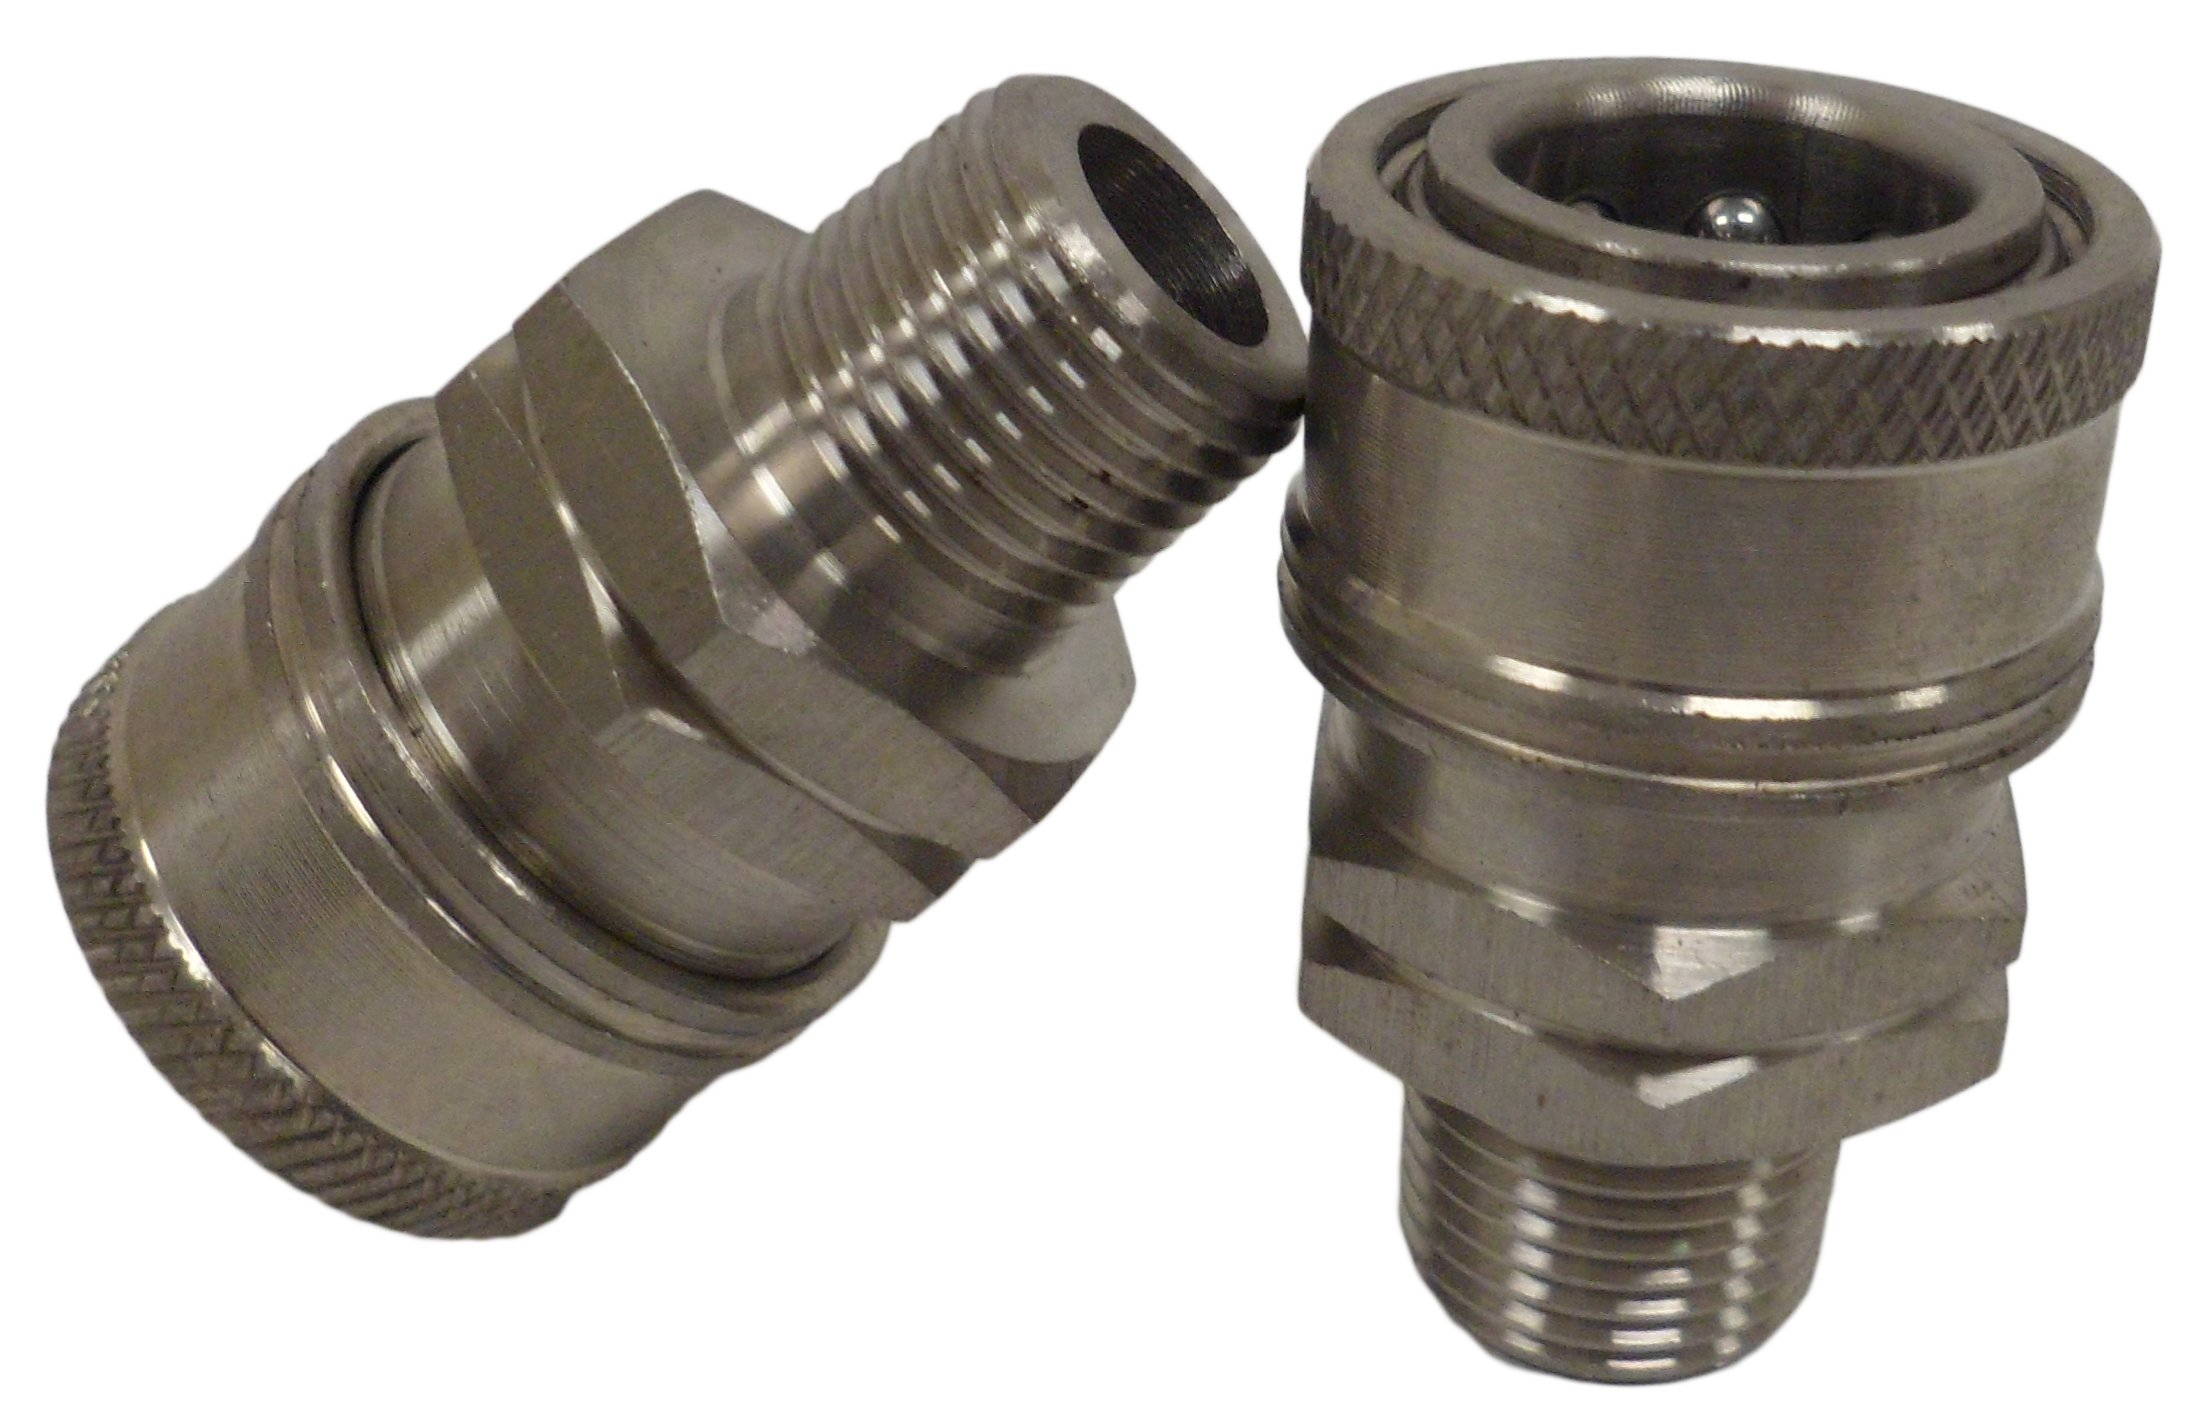 Ultimate Washer Female Coupler, Stainless Steel, 2-Pack (3/8'')